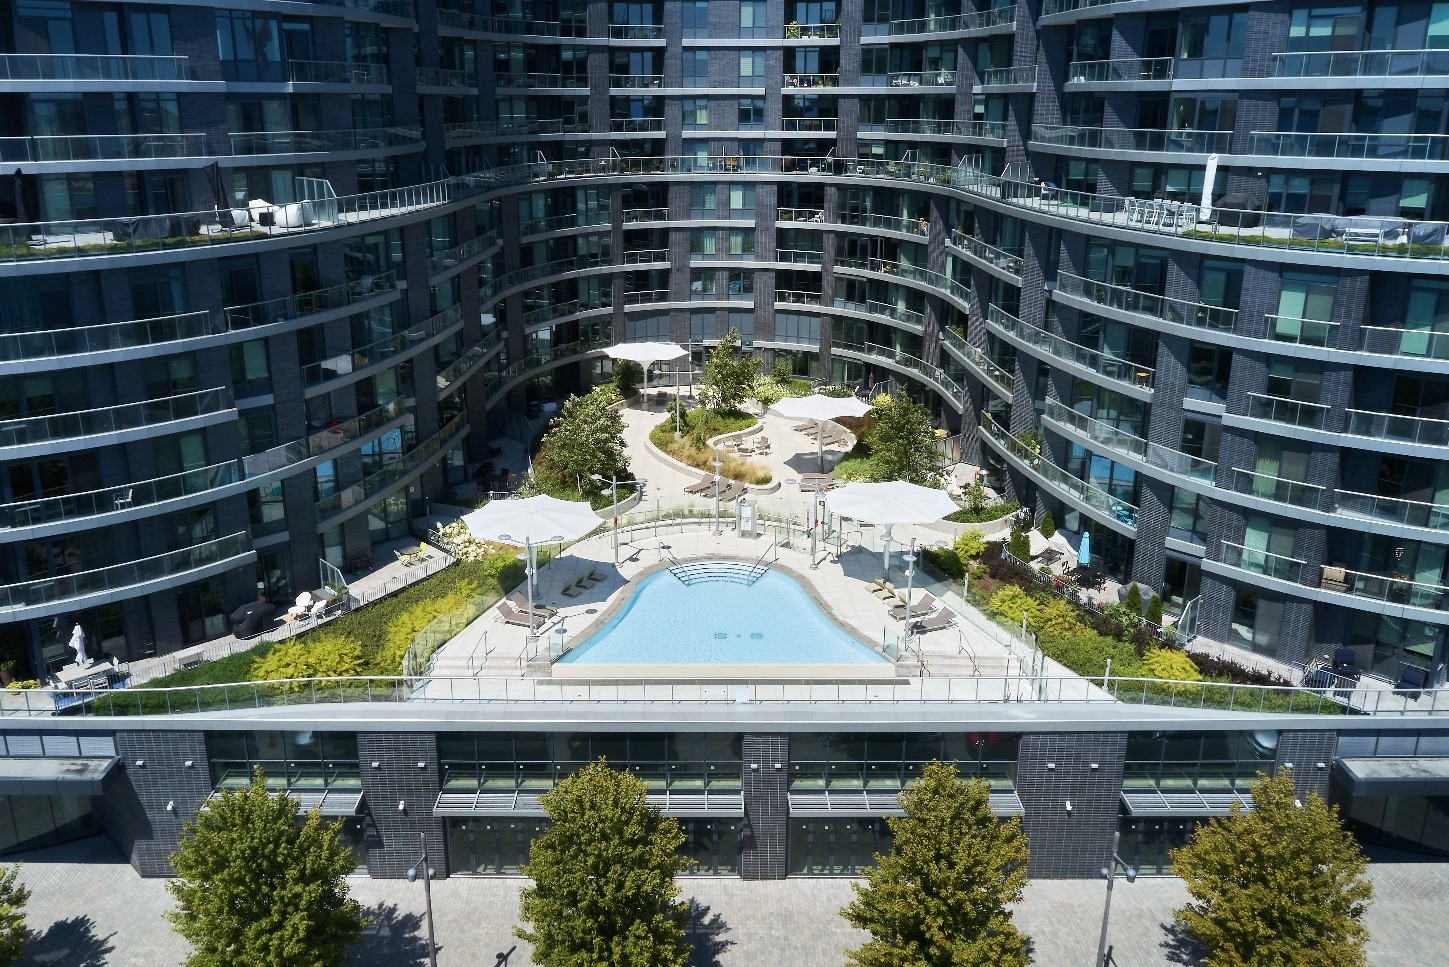 The 12-storey lake-side community was designated LEED®-Platinum for its environmentally friendly features